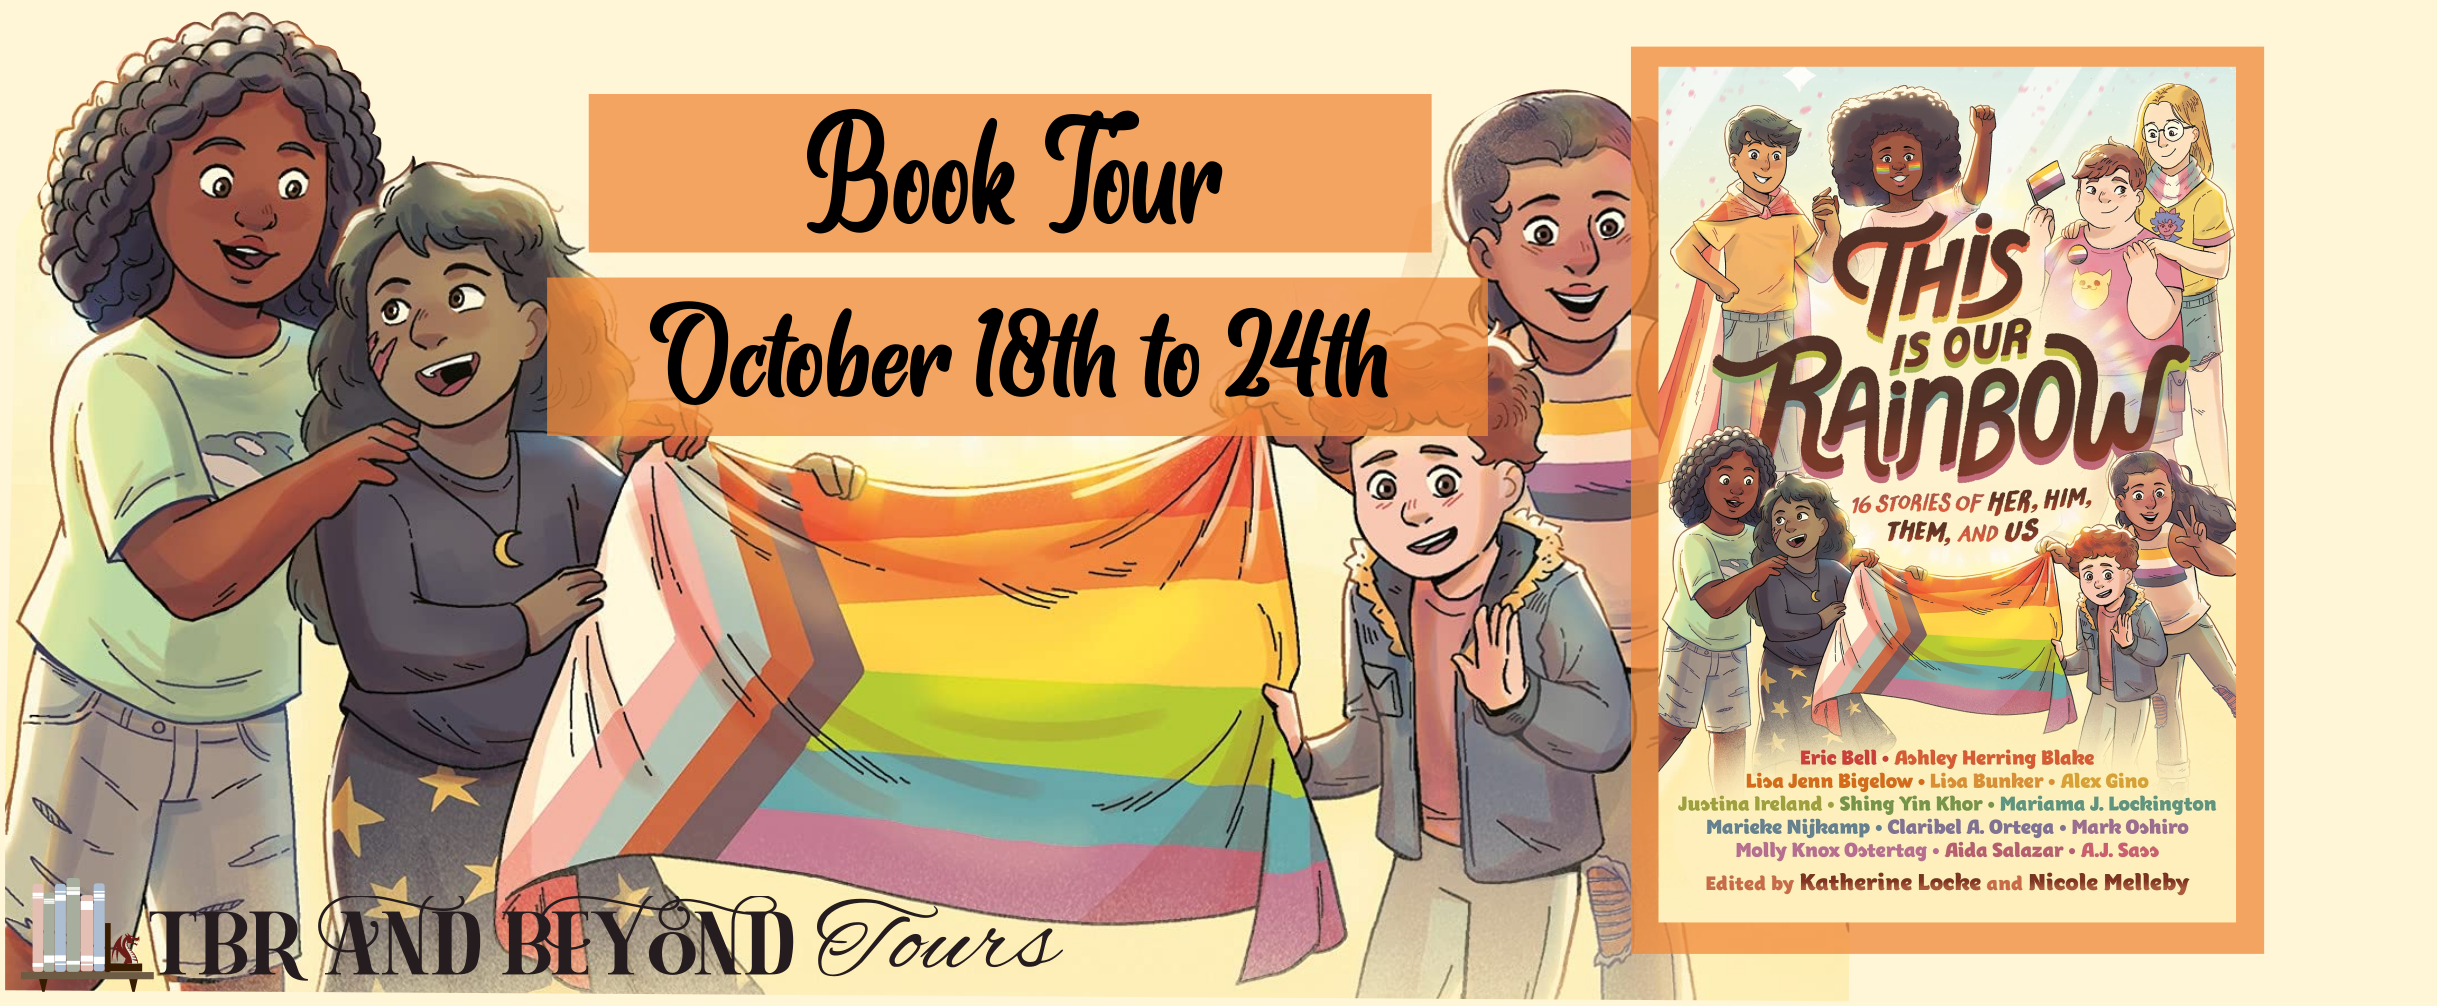 Blog Tour: This is Our Rainbow edited by Katherine Locke and Nicole Melleby (Aesthetic Board + Top 5 Reasons to Read!)